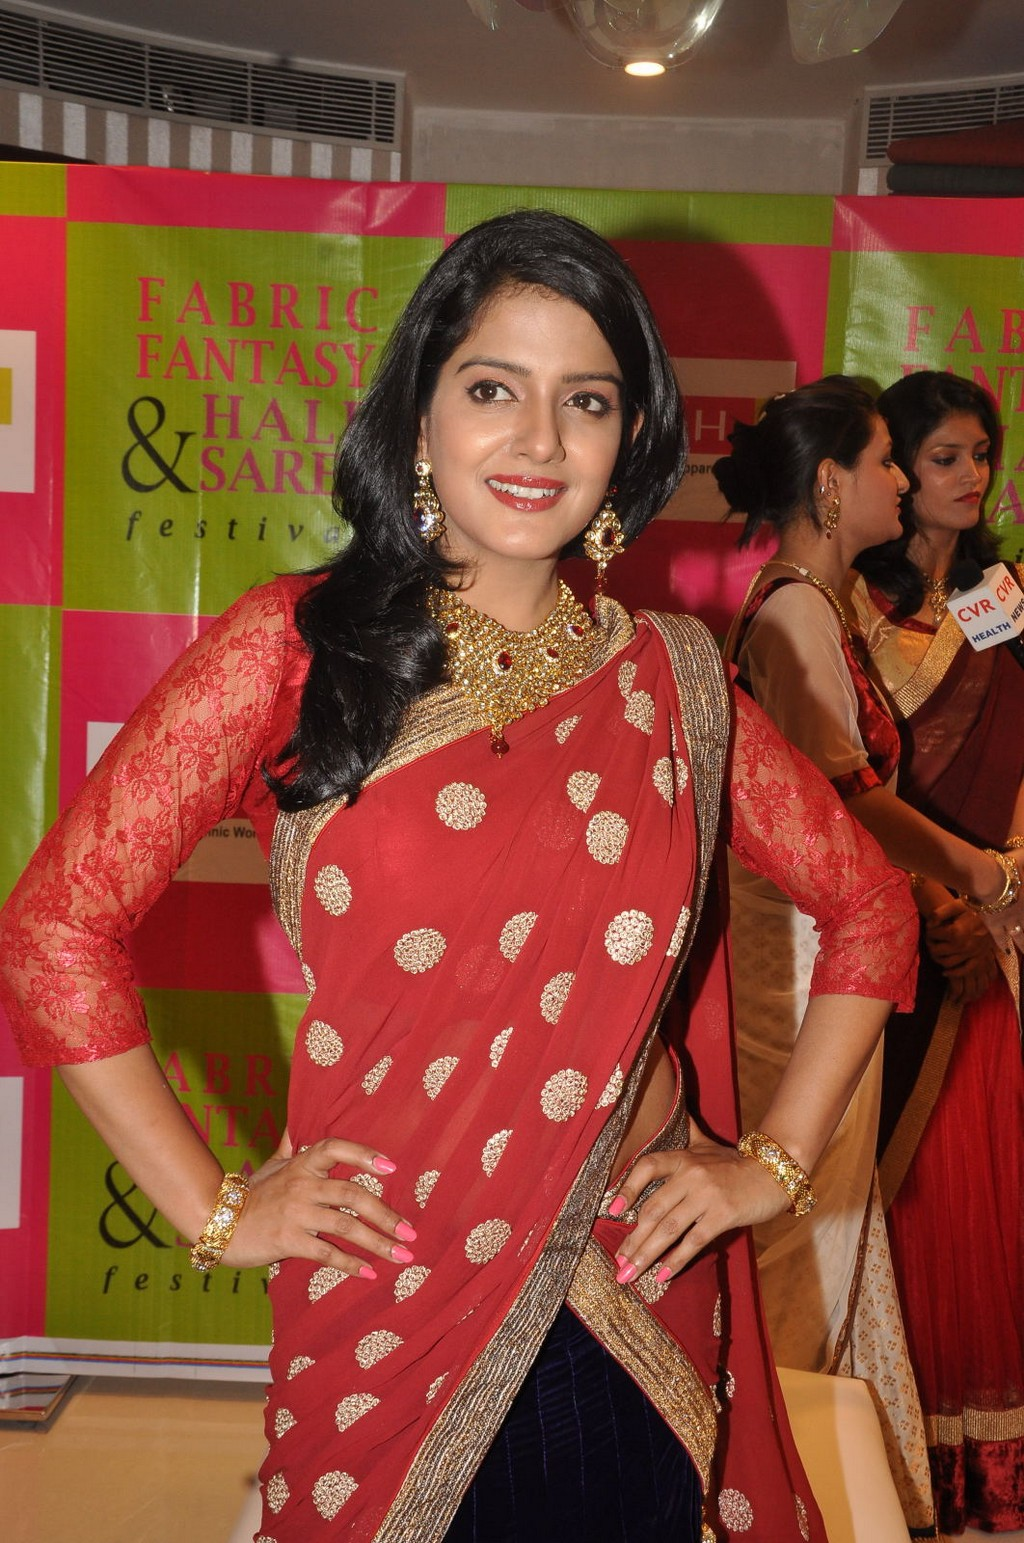 Visakha Singh in Red Saree - VP (3)